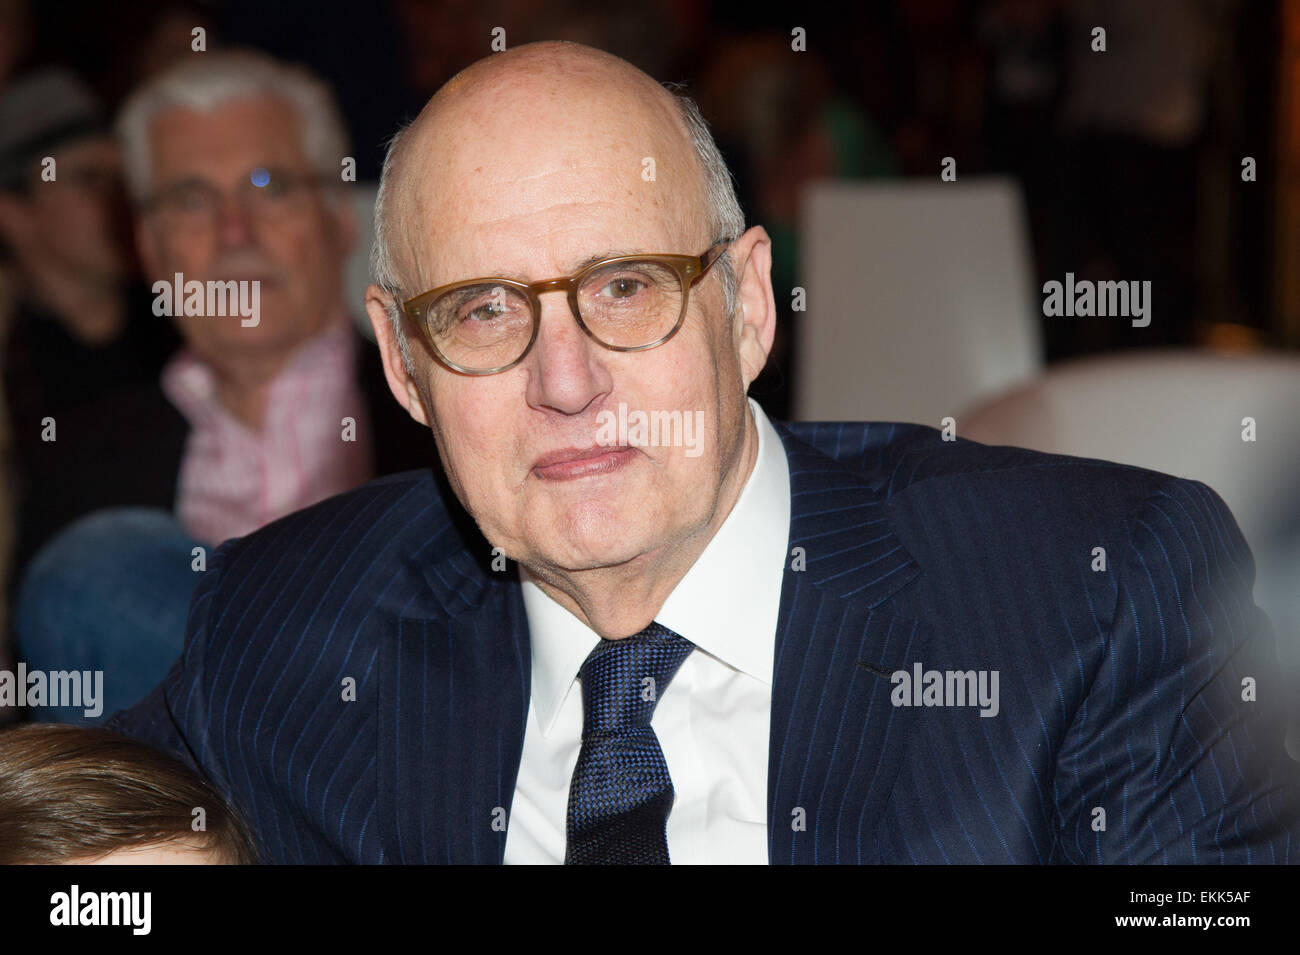 Munich, Germany. 10th Apr, 2015. American actor Jeffrey Tambor at the premiere of US American TV show 'Transparent' - Stock Image